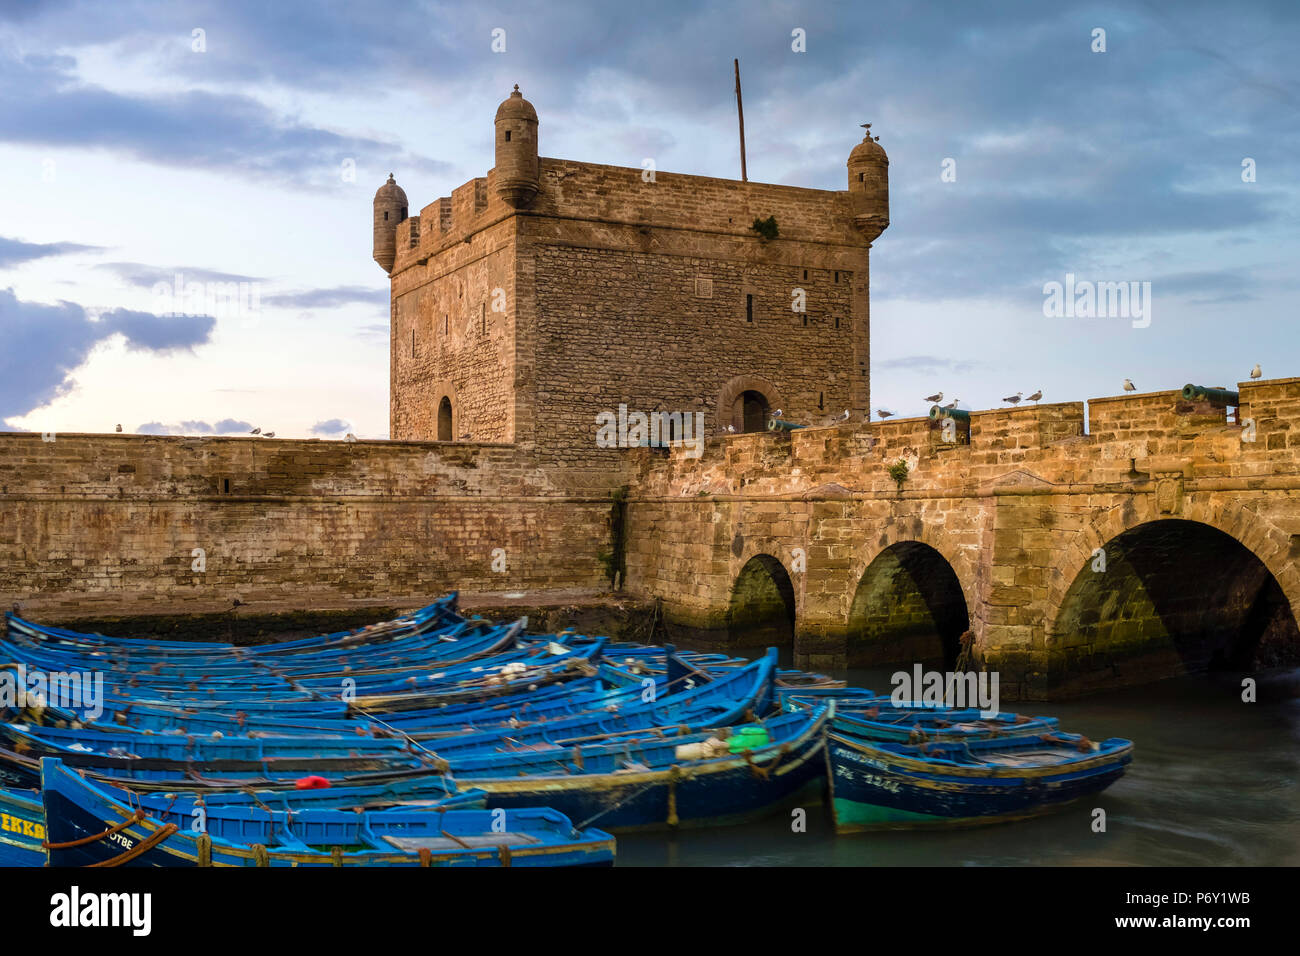 Morocco, Marrakesh-Safi (Marrakesh-Tensift-El Haouz) region, Essaouira. Skala du Port, 18th-century seafront ramparts on the fishing port at dusk. - Stock Image